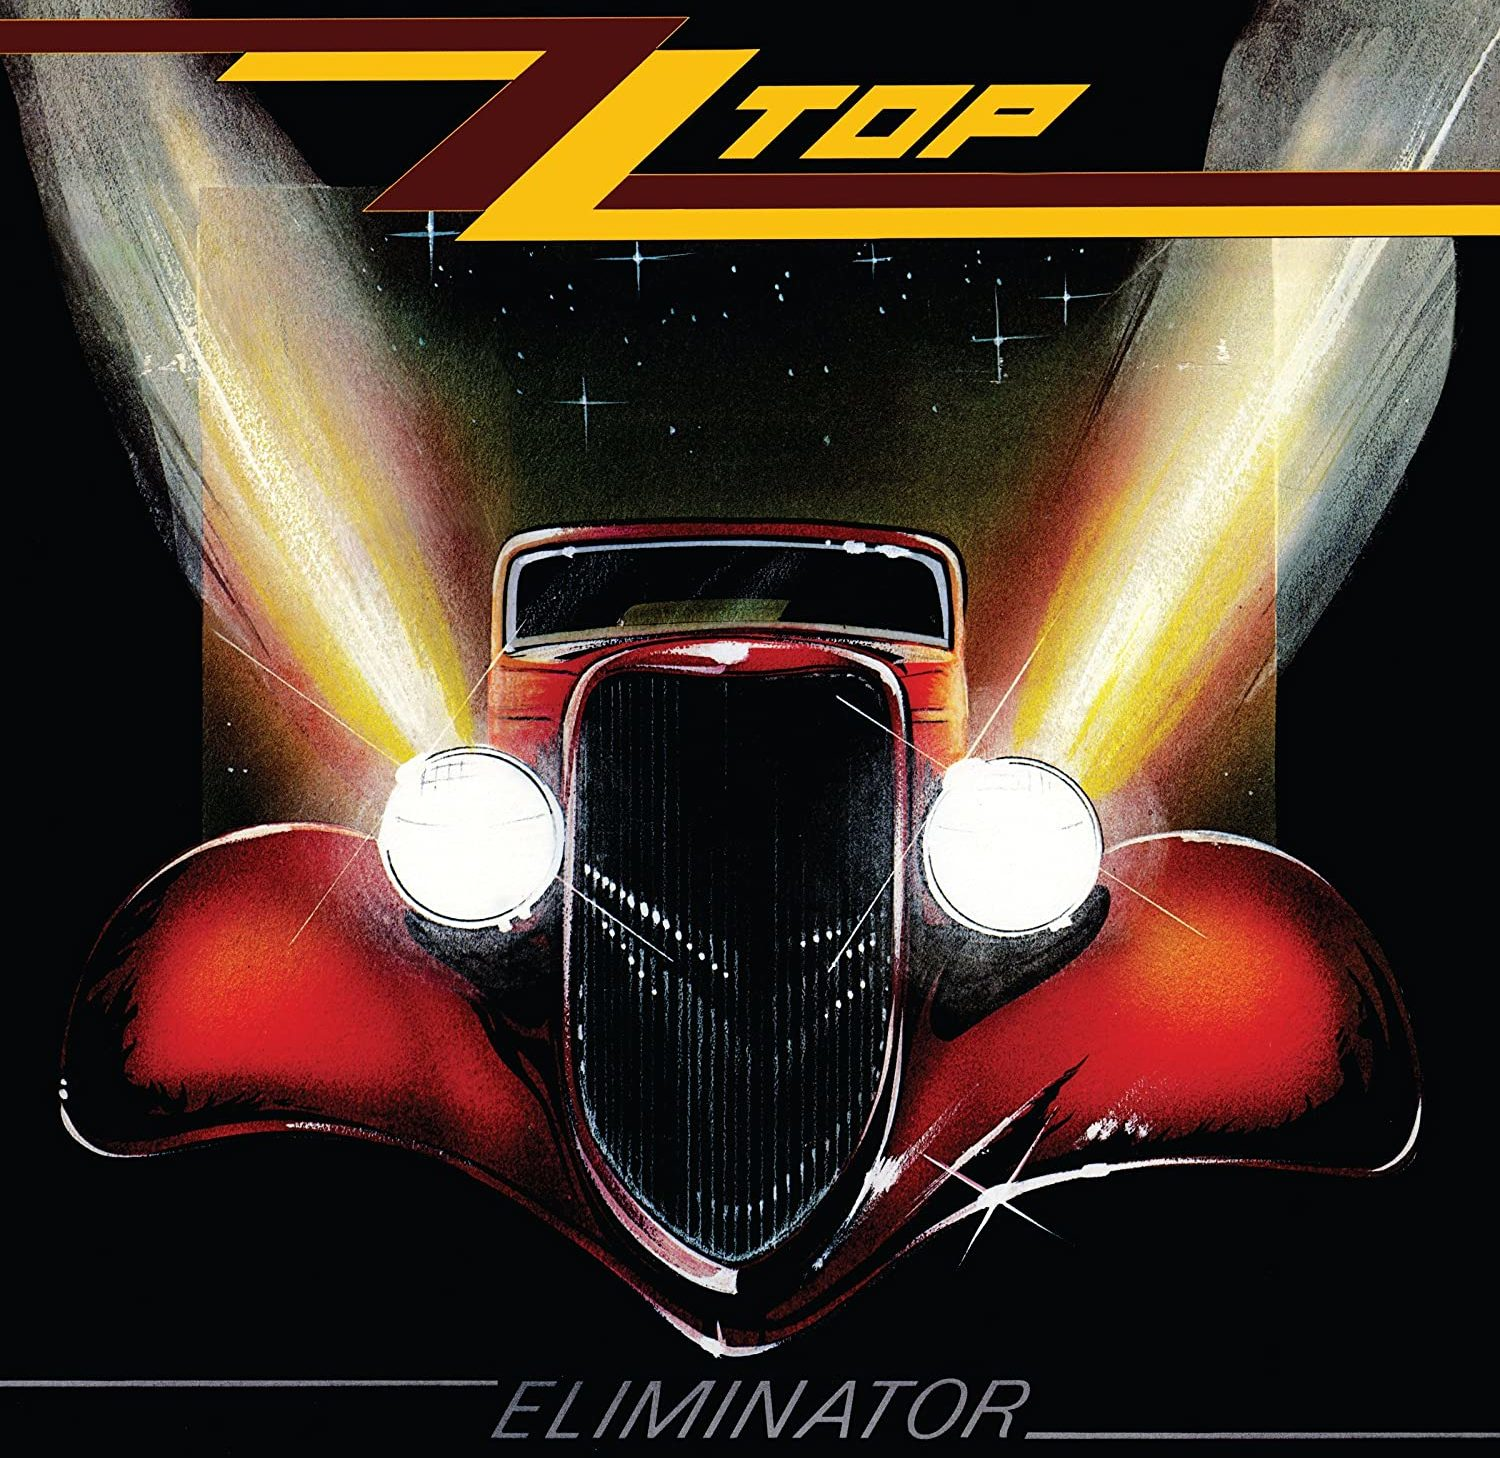 ZZ Top Eliminator e1610375690287 10 Sharp-Dressed Facts About ZZ Top